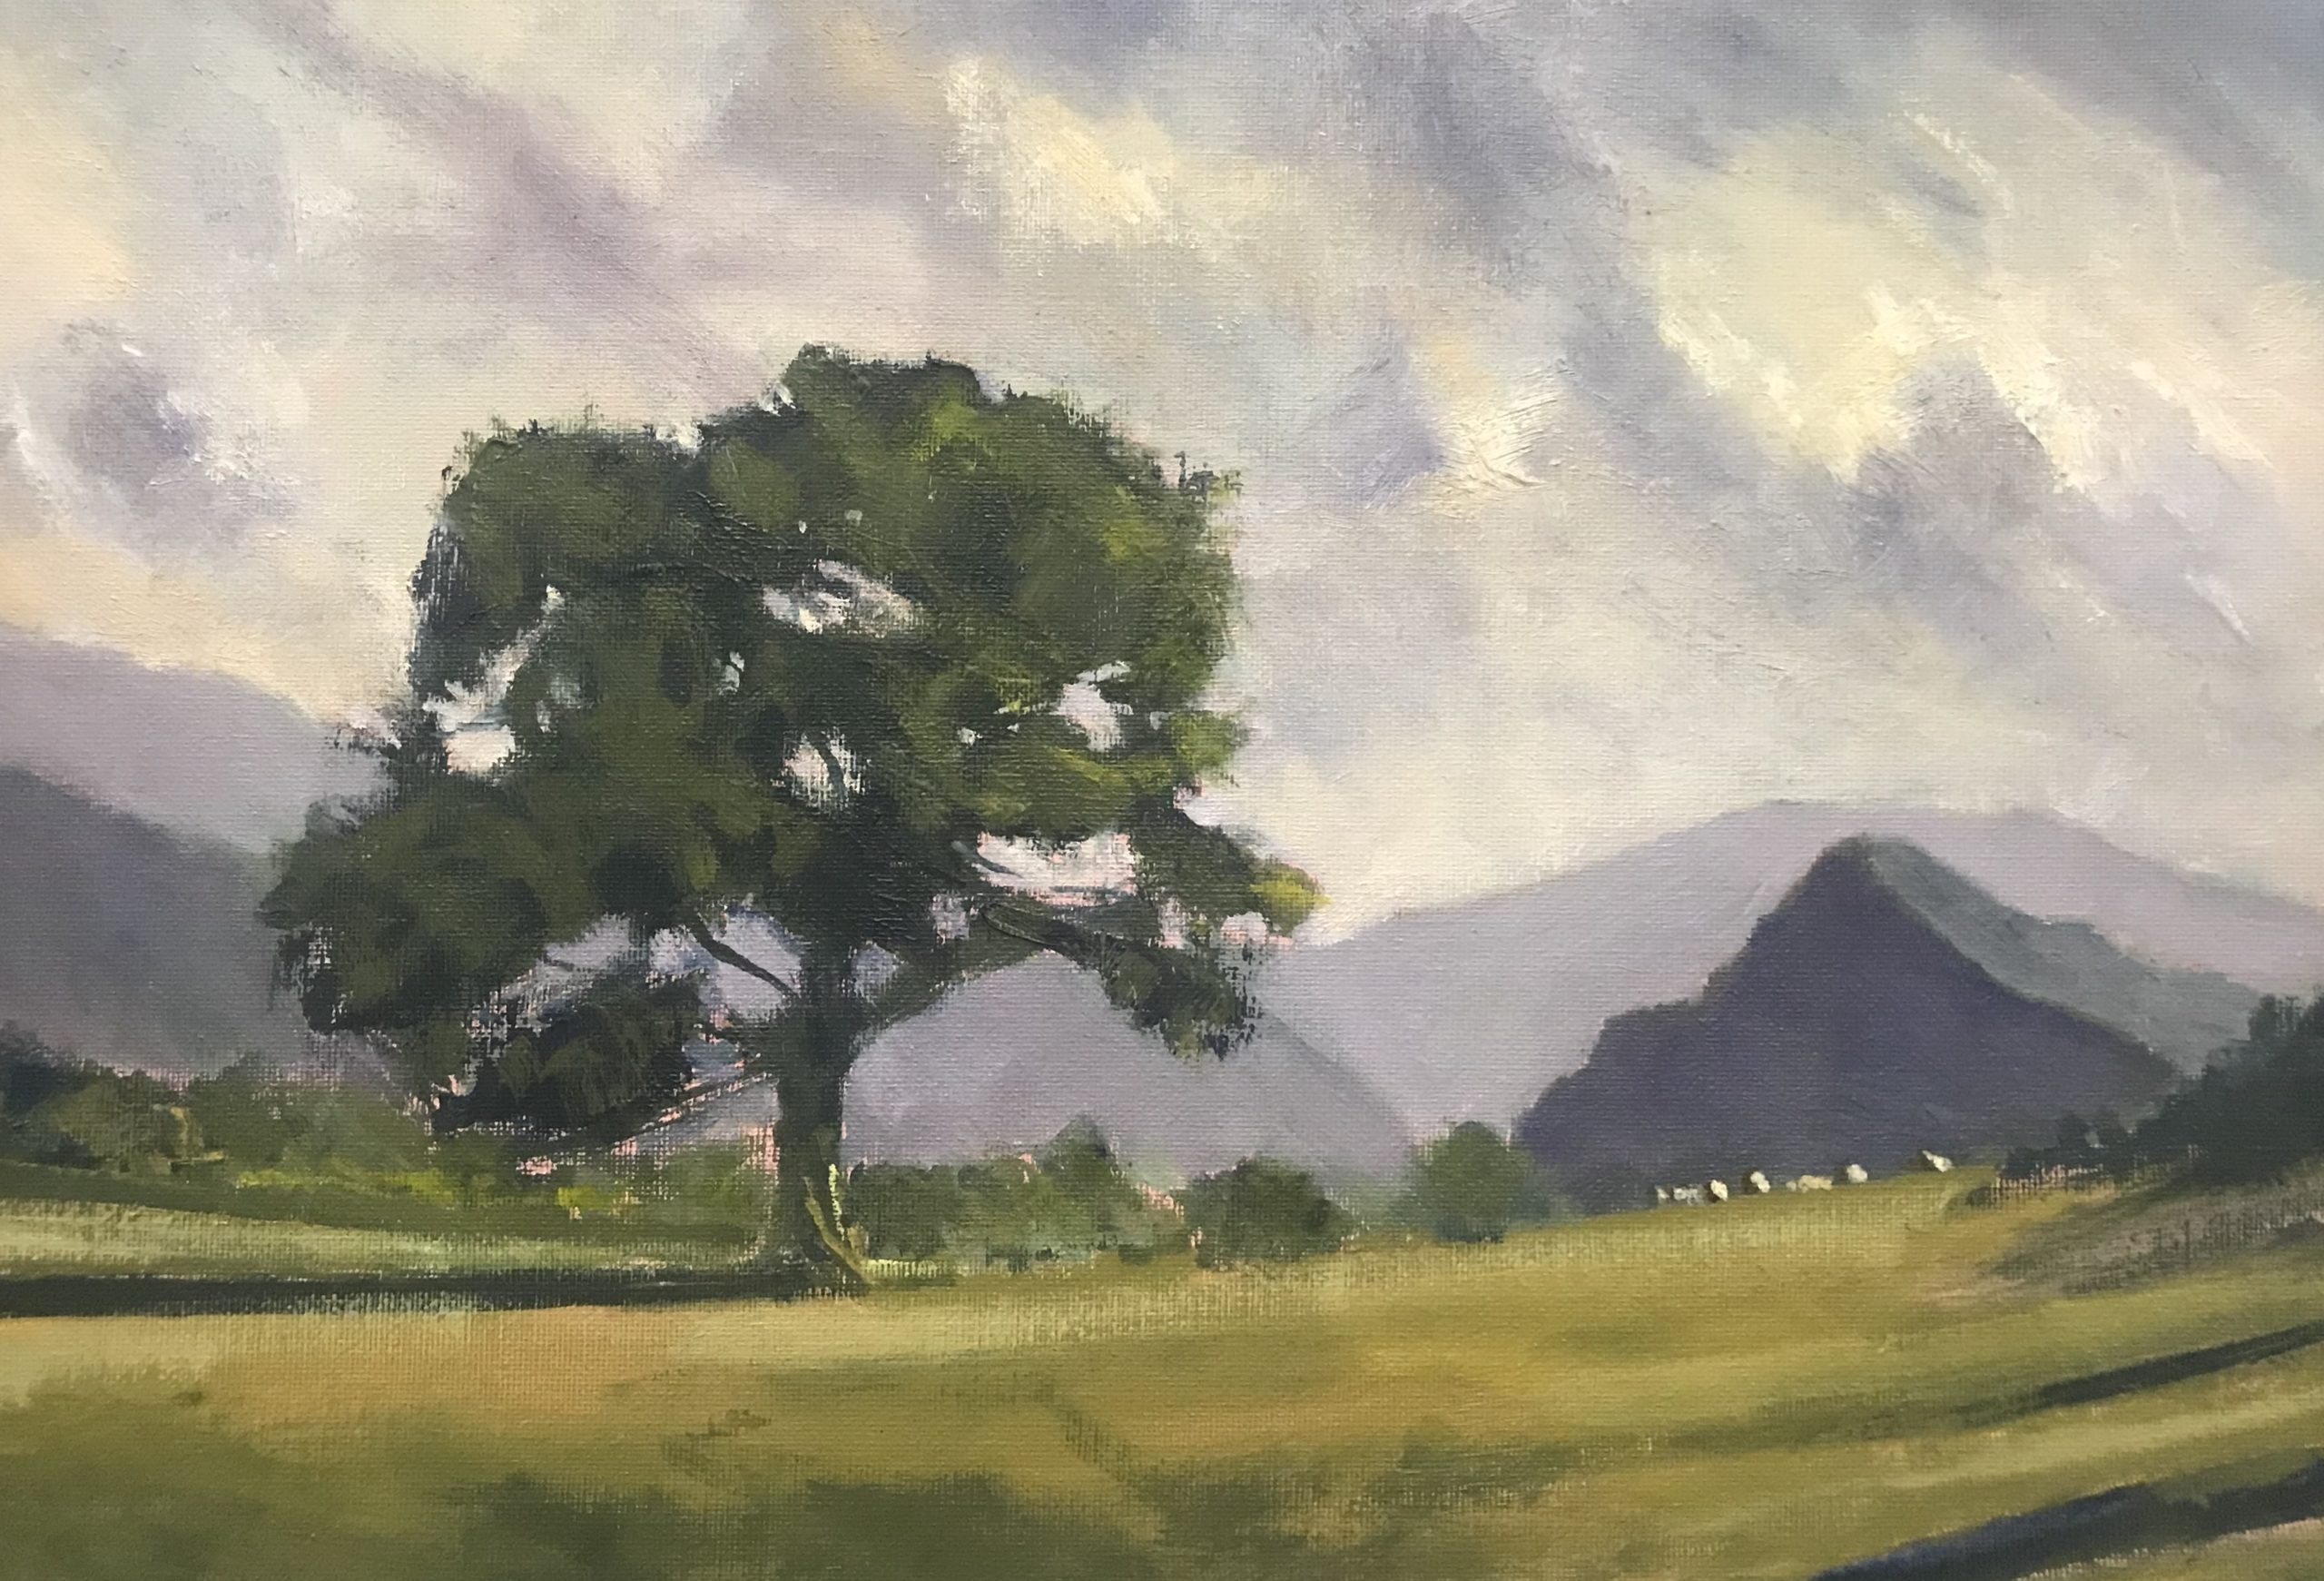 A painting of Bird Rock, a well known landmark at the bottom of Snowdonia National Park.